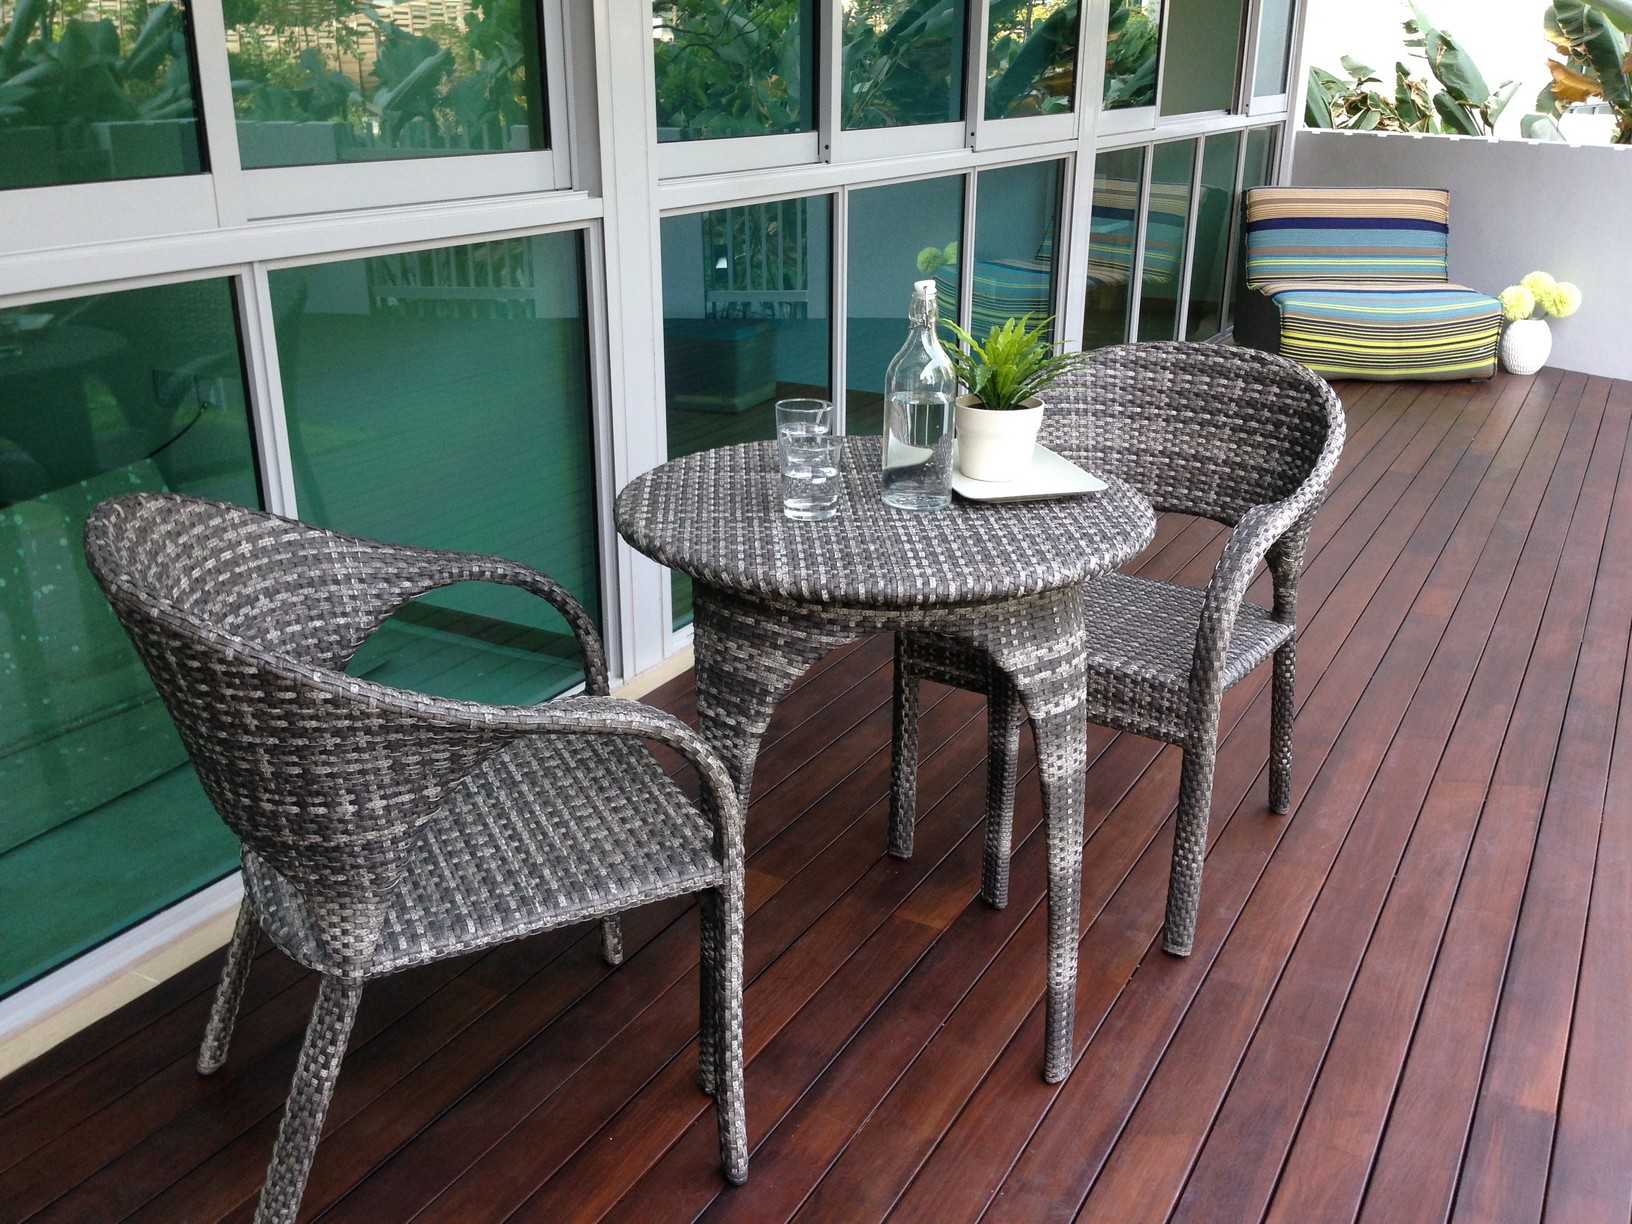 Apartment balcony furniture homesfeed for Outside balcony furniture